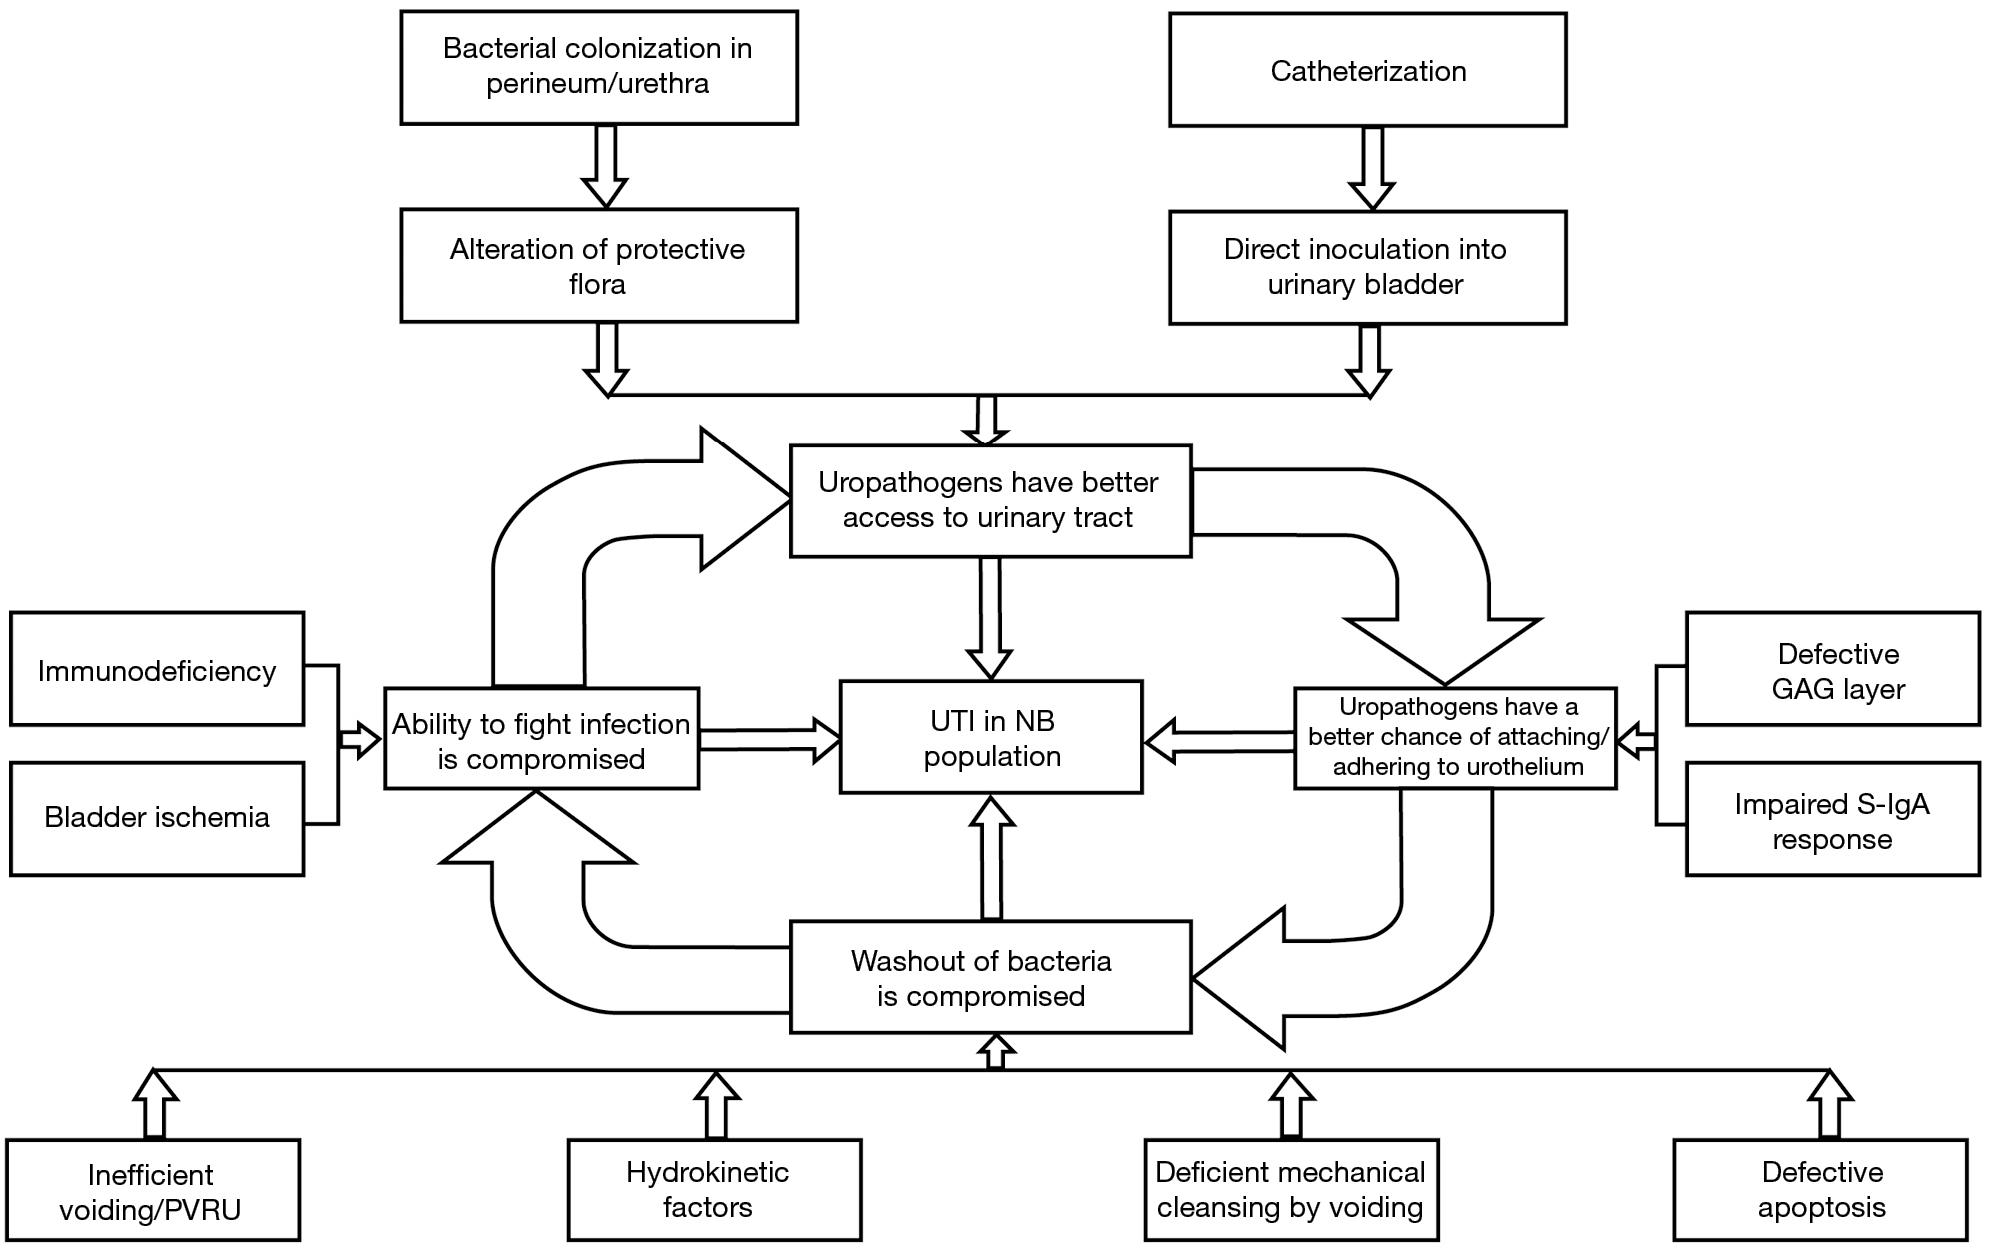 hight resolution of figure 2 schematic representation of interrelated factors contributing to urinary tract infections in the neurogenic bladder 1